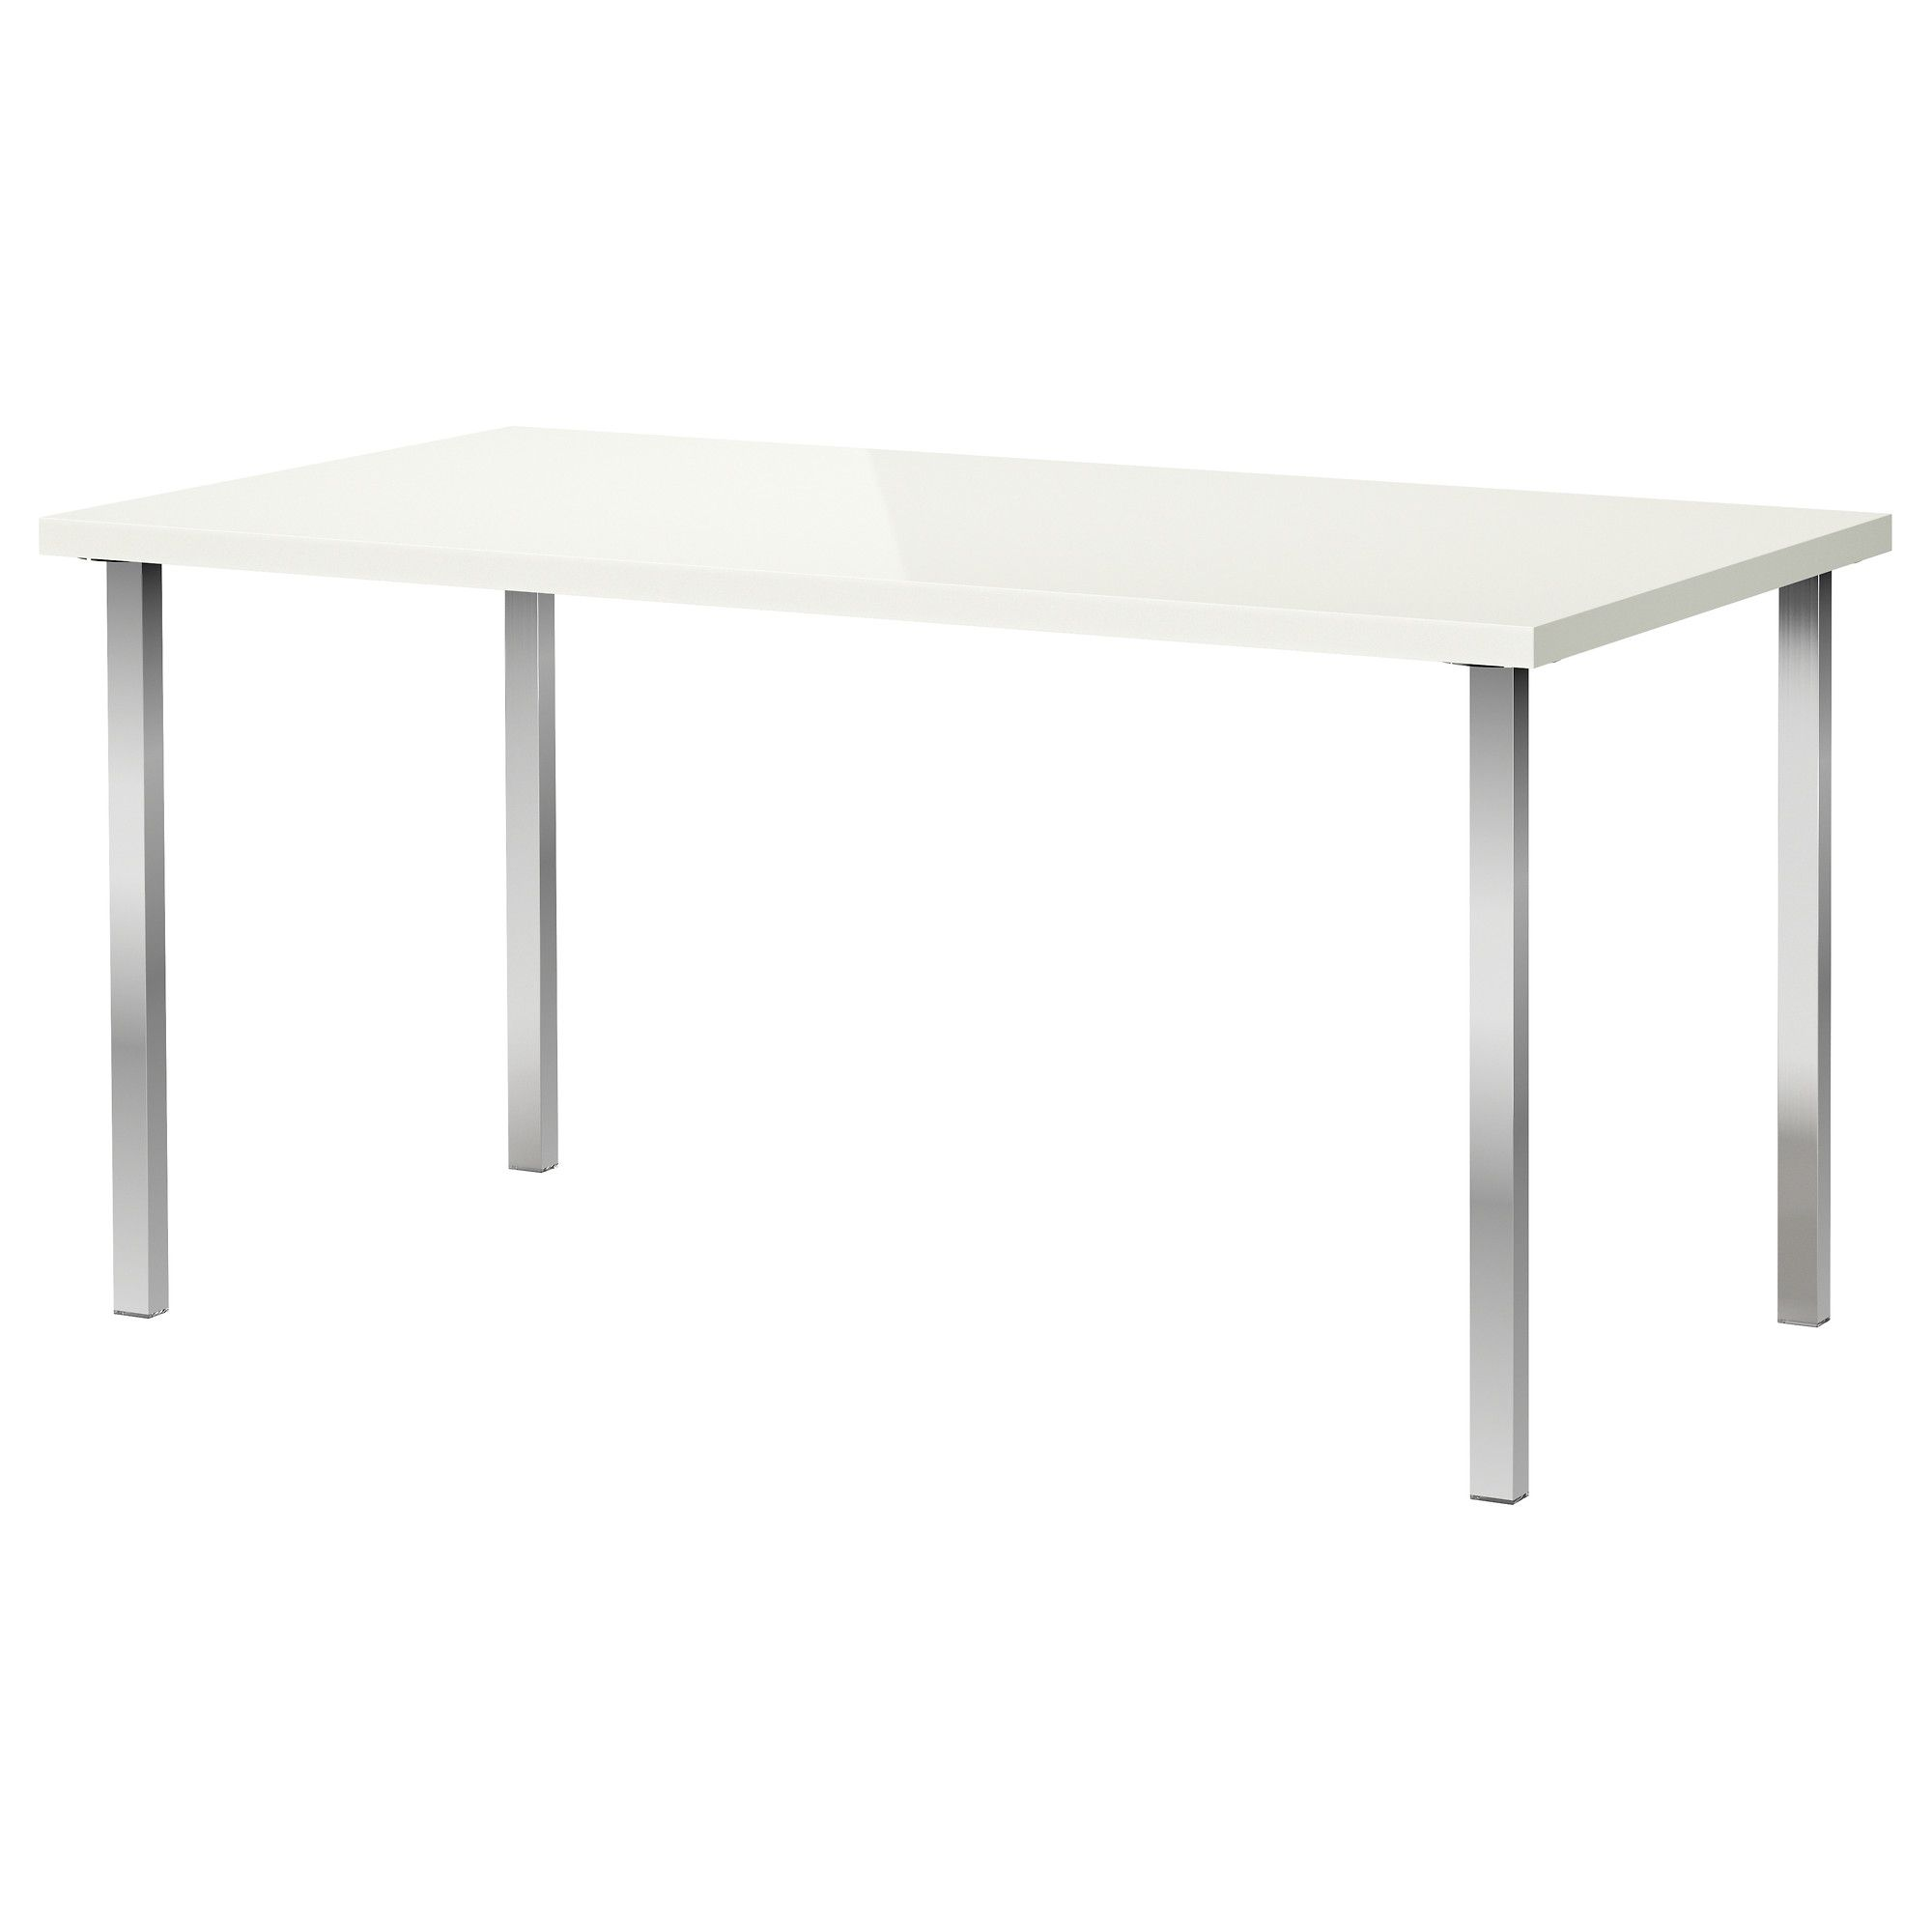 LINNMON/GODVIN Table - high gloss white/chrome plated - IKEA